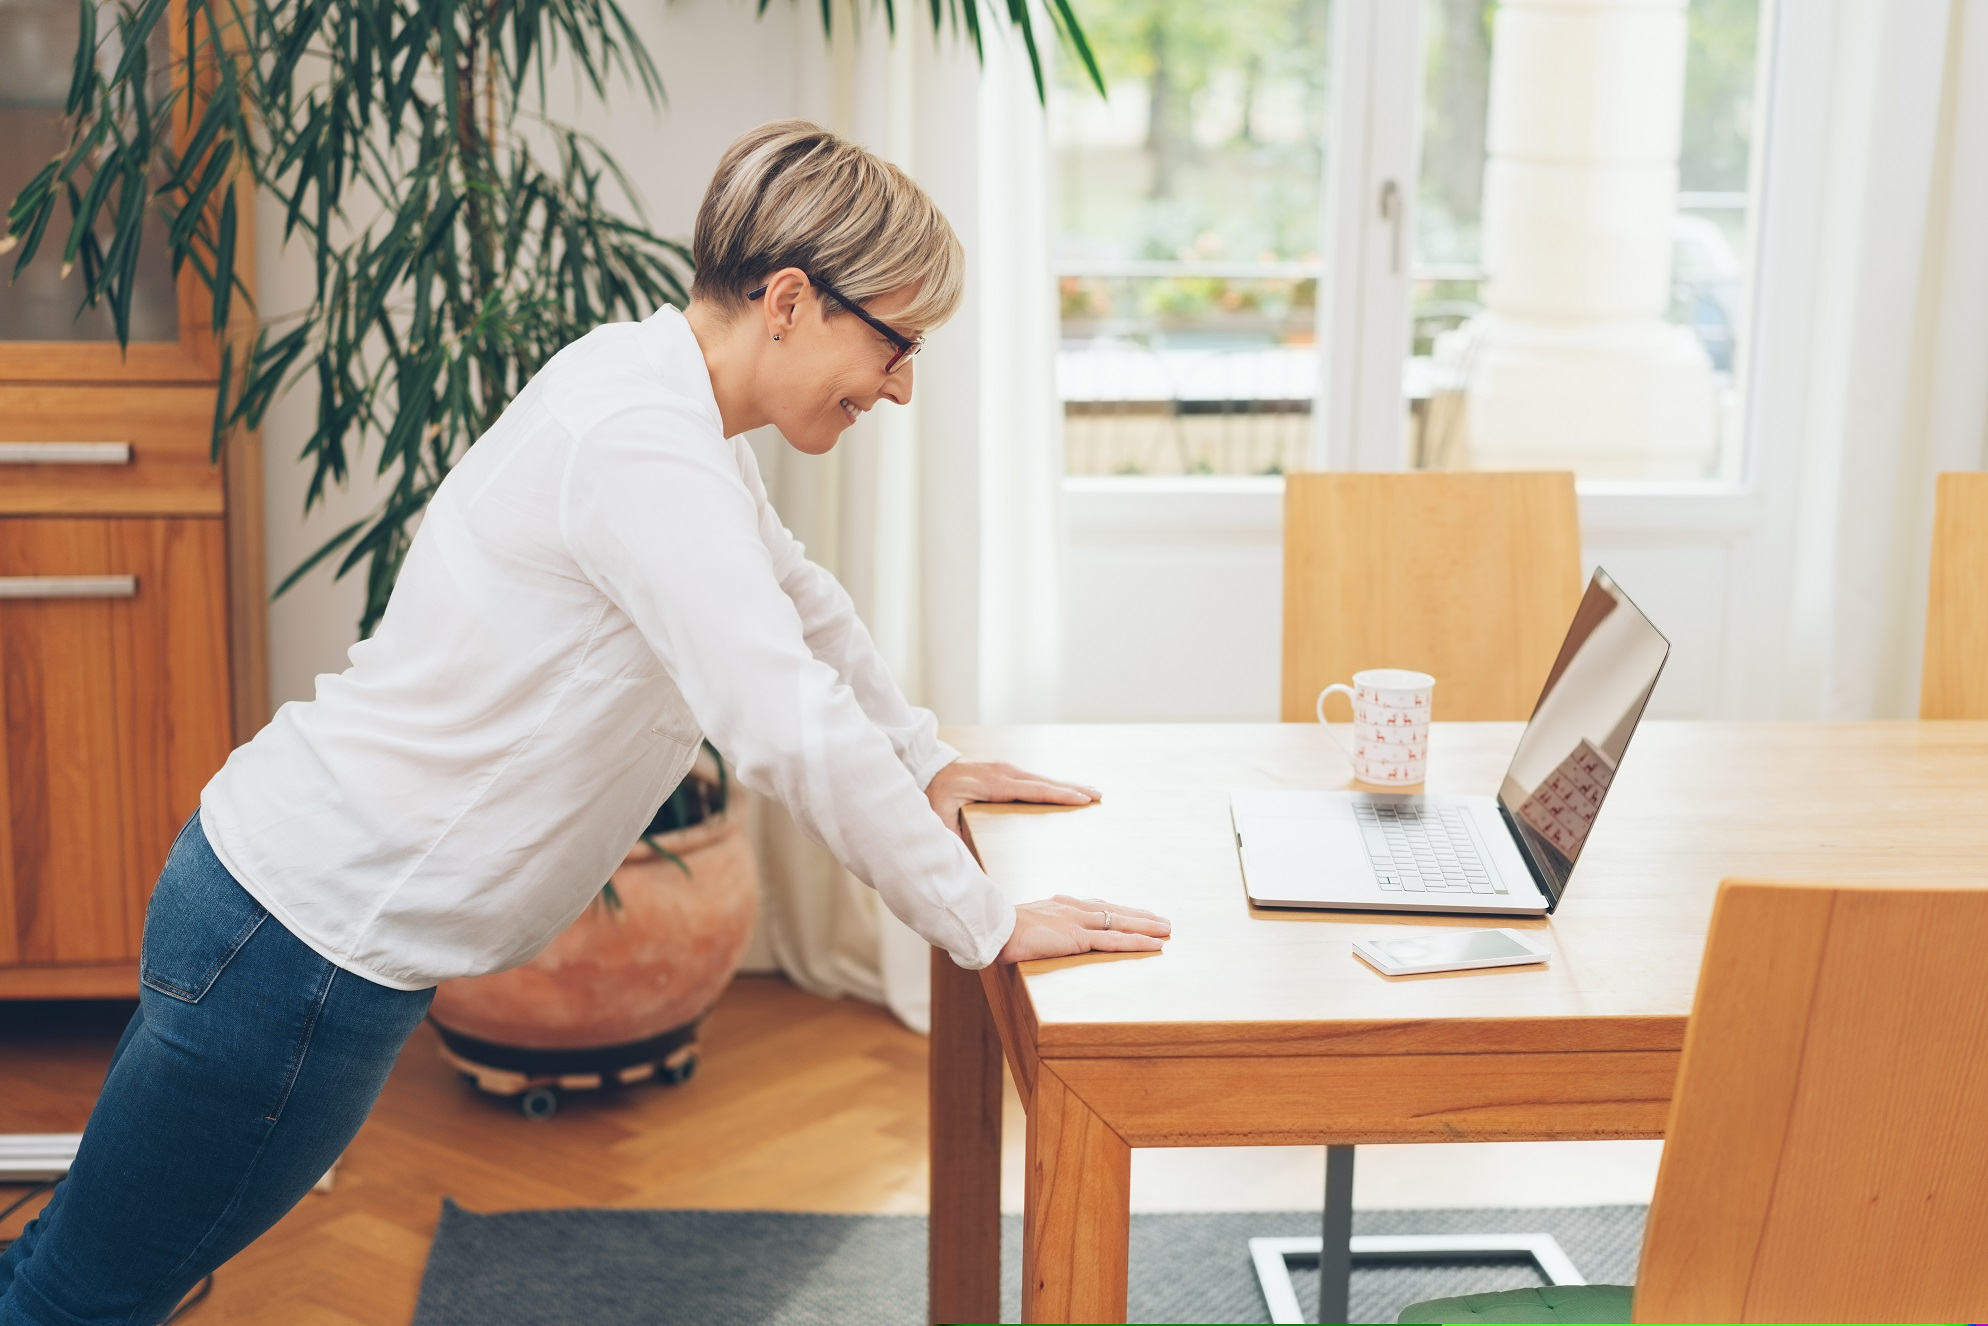 Active workplaces encouraging employees to be active